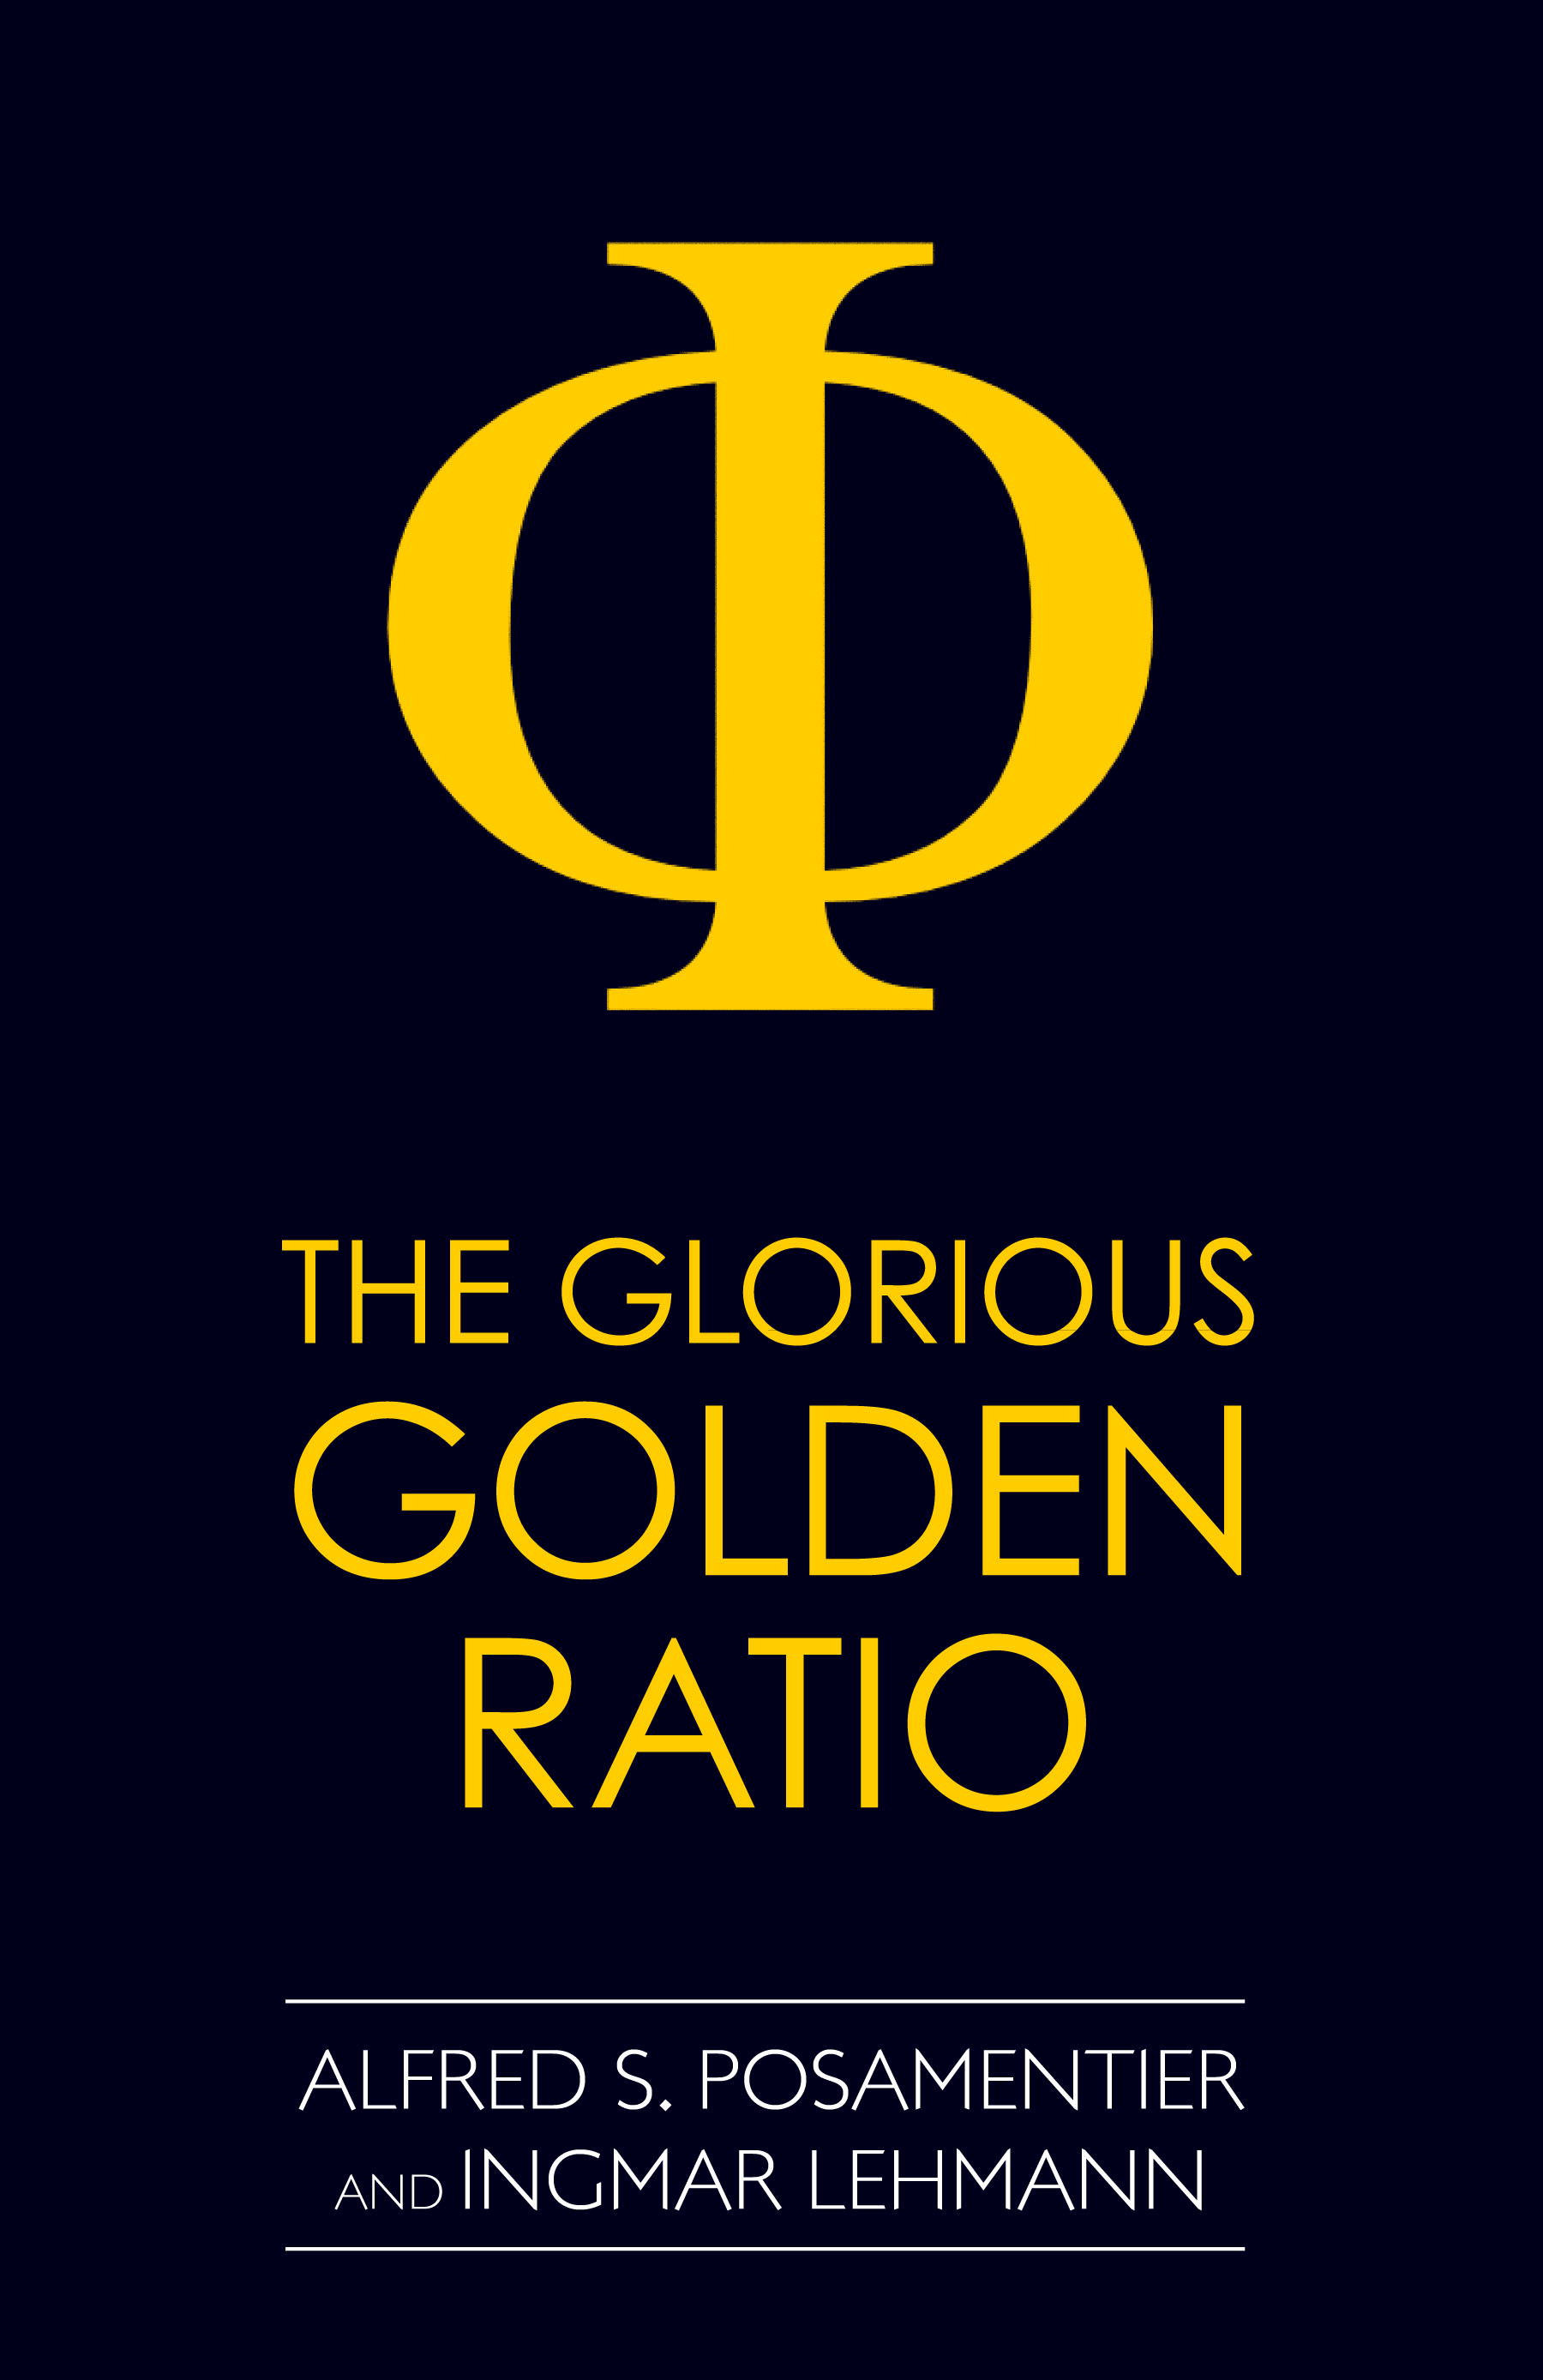 The Glorious Golden Ratio